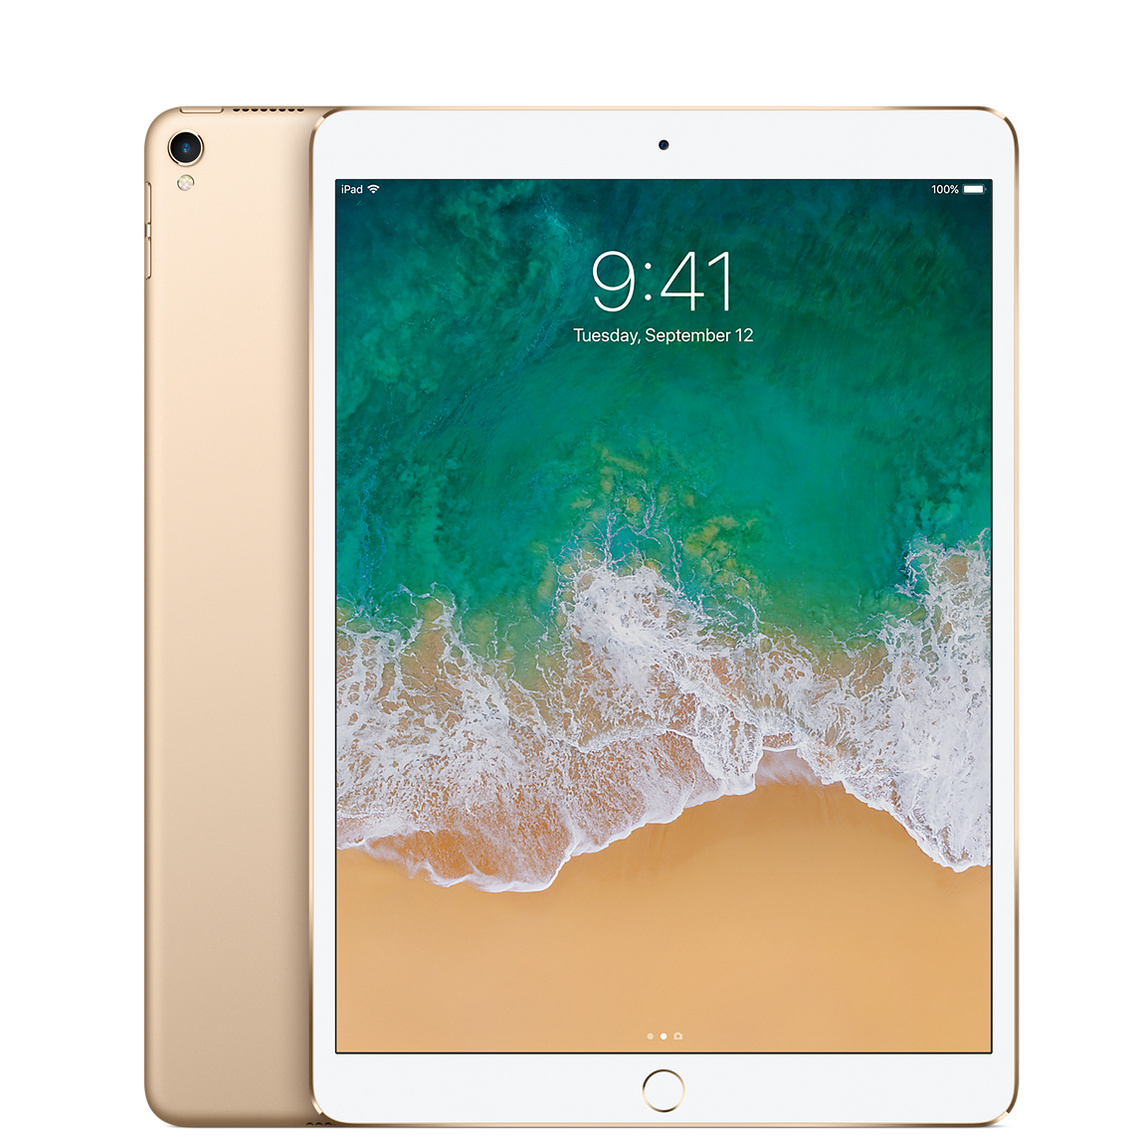 Refurbished 10 5-inch iPad Pro Wi-Fi 256GB - Gold